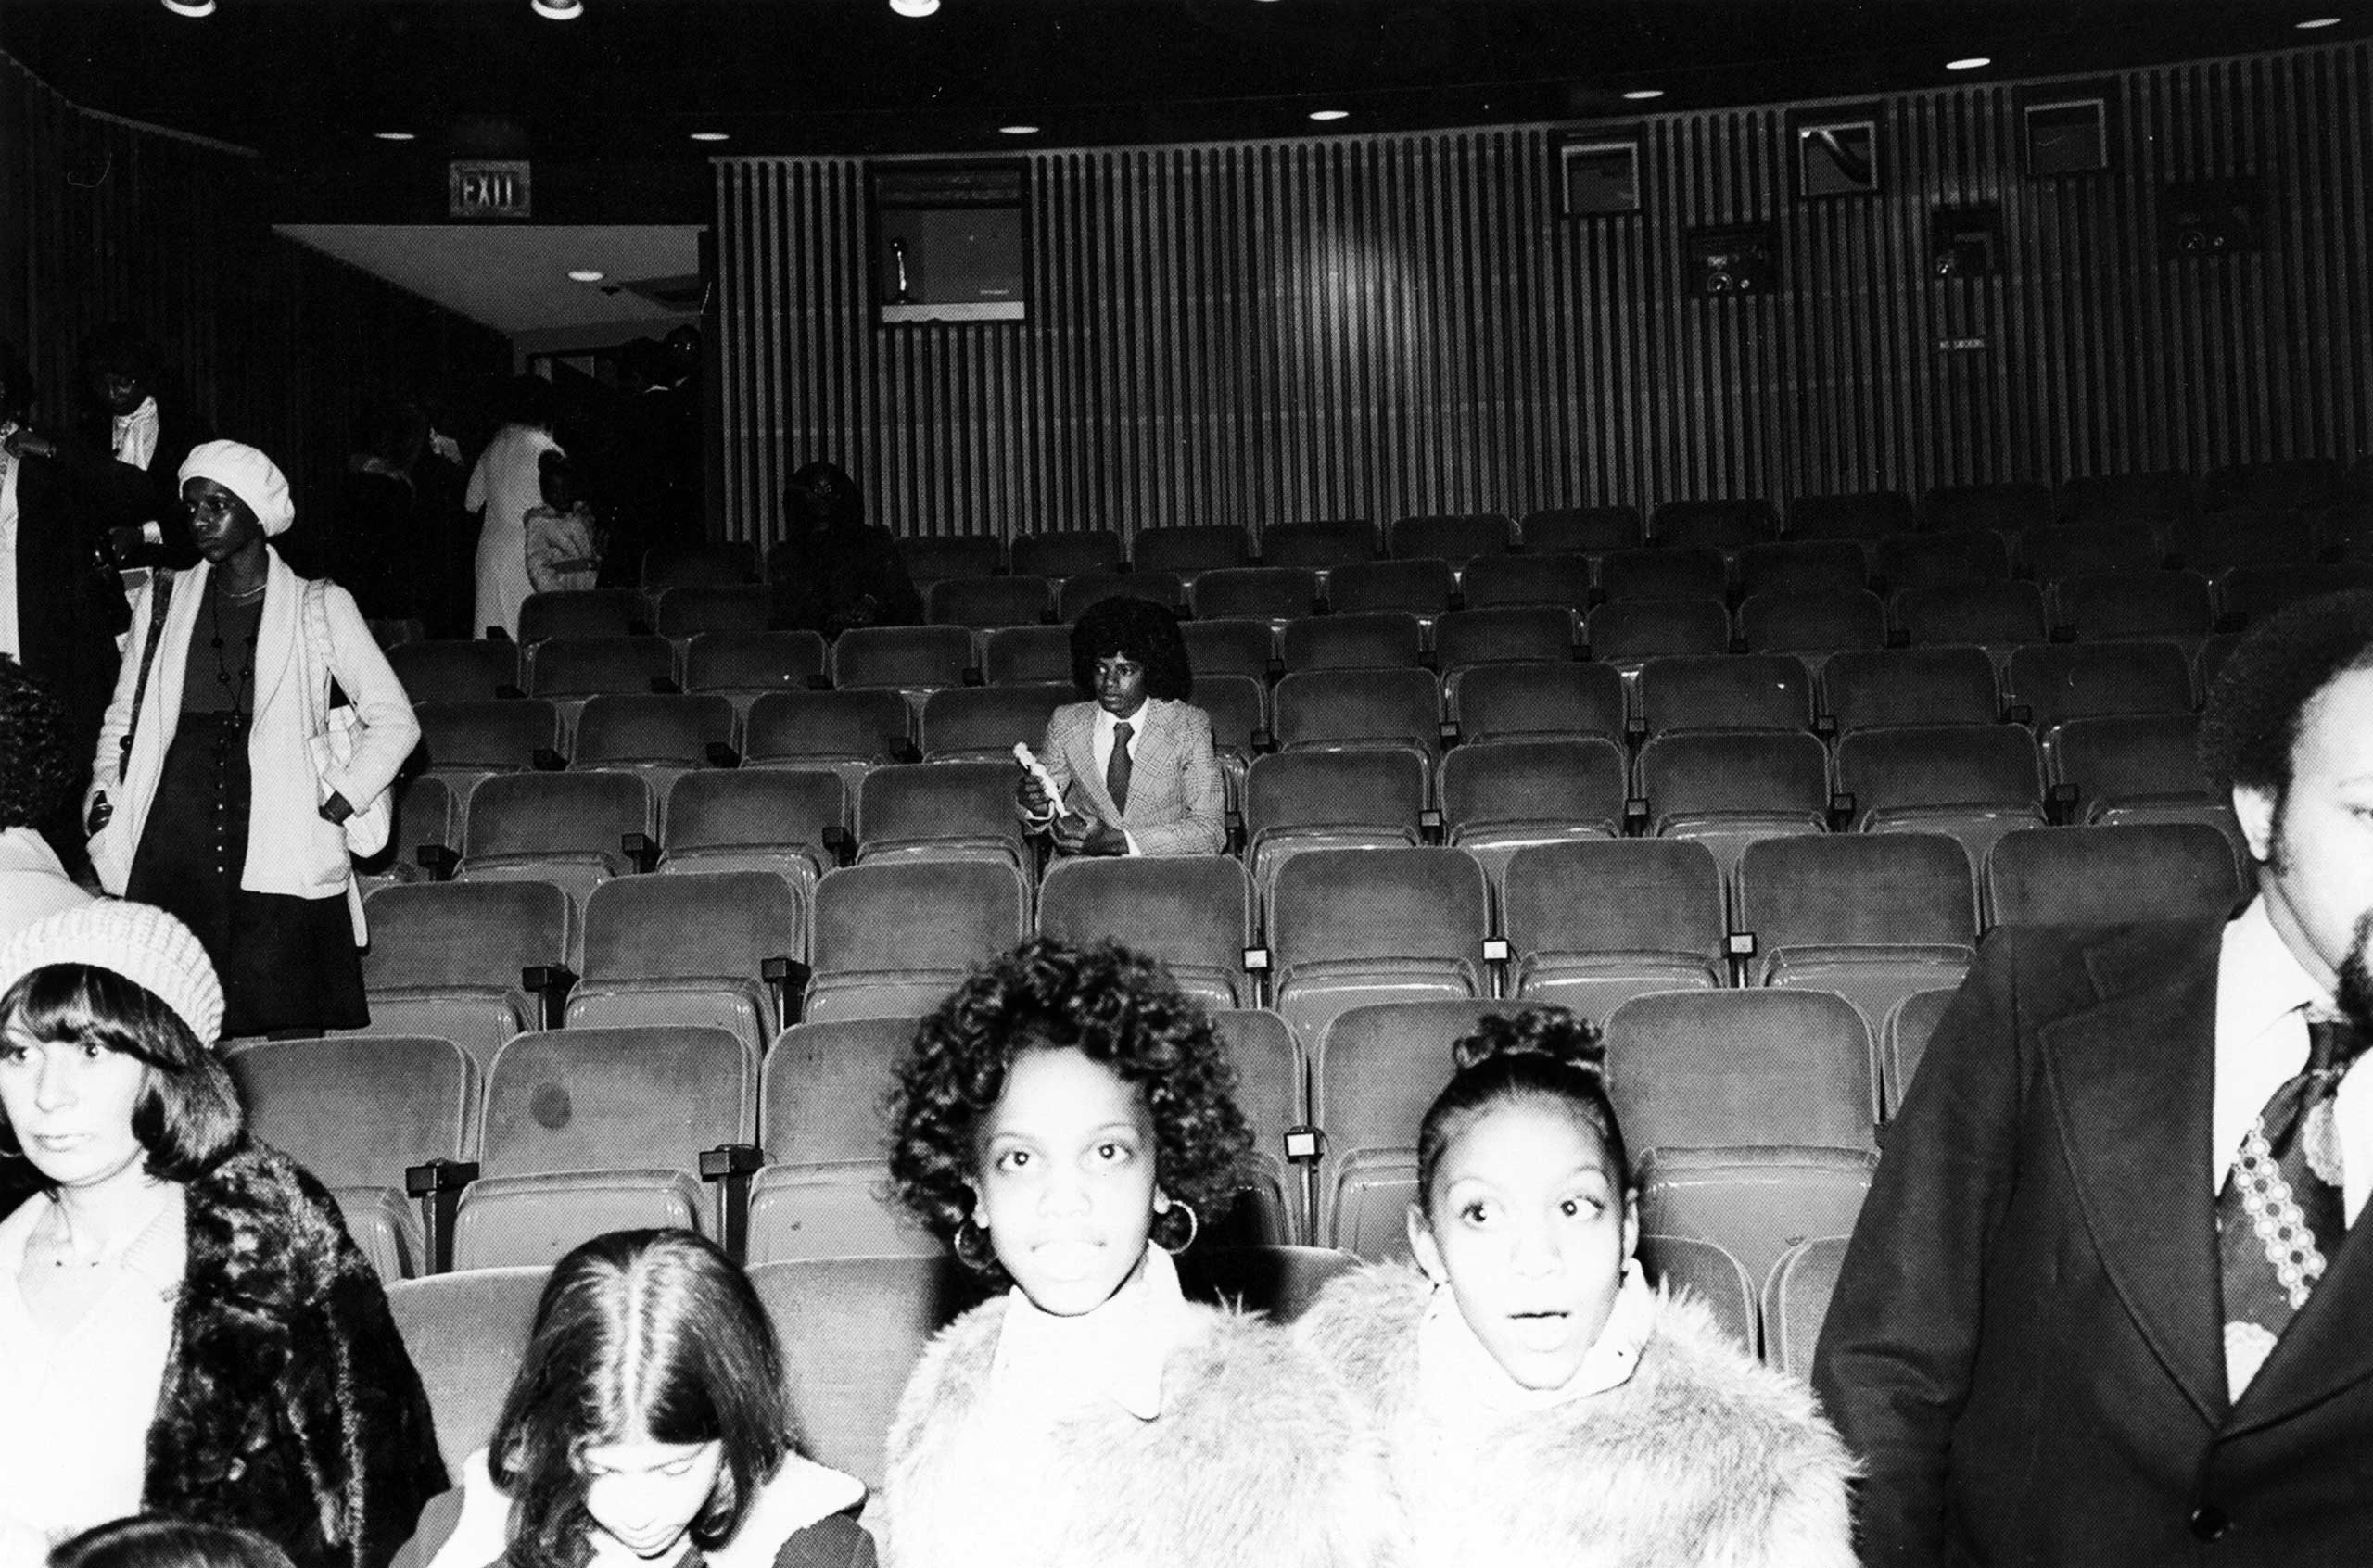 Michael Jackson sits alone in a movie theater in New York City in the 1970s.